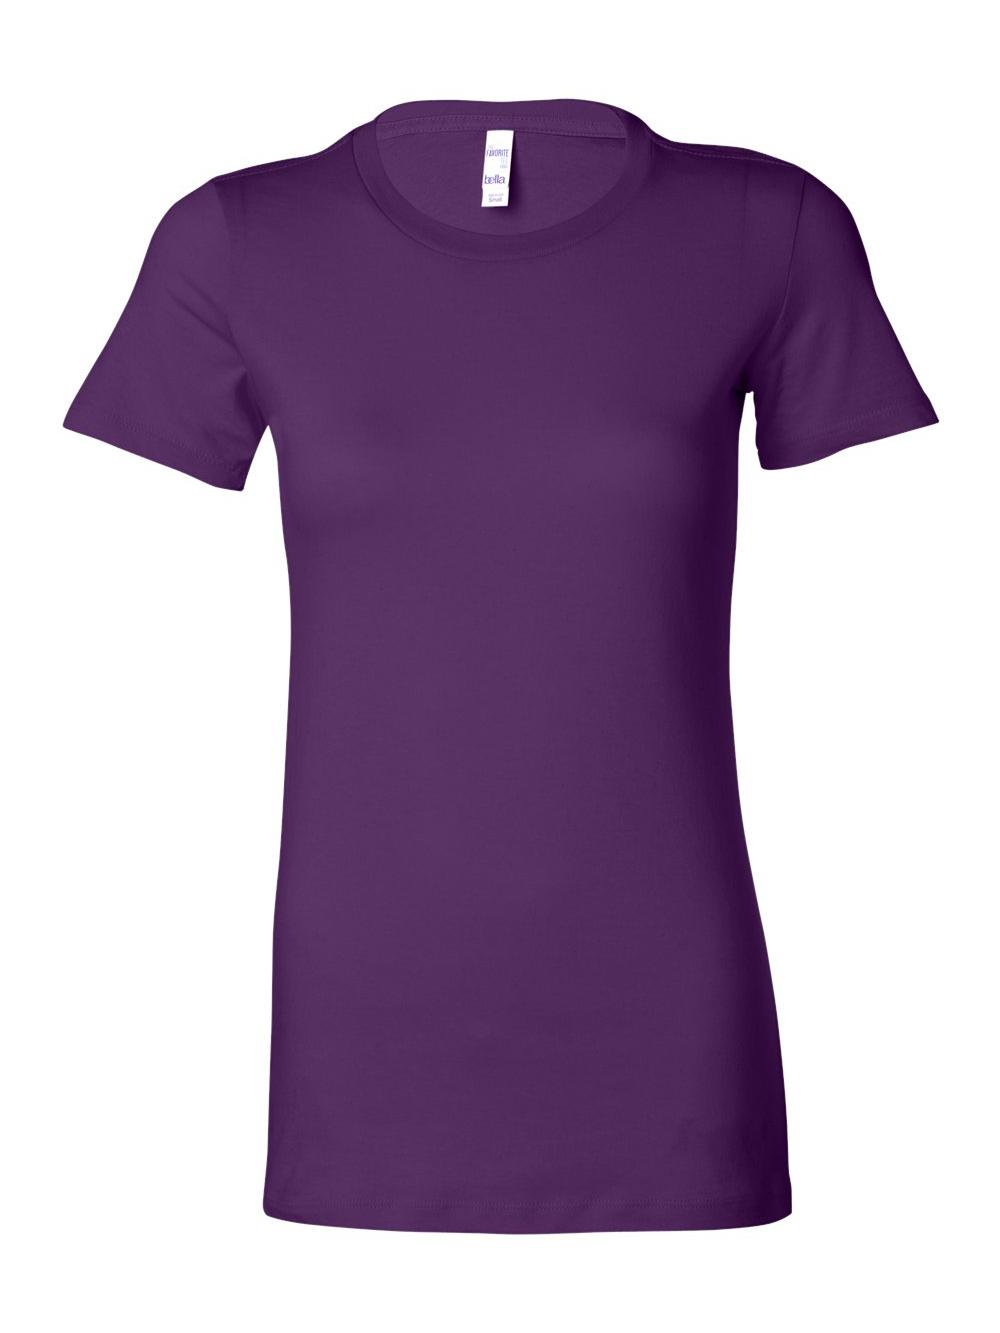 Bella-Canvas-Women-039-s-The-Favorite-Tee-6004 thumbnail 120